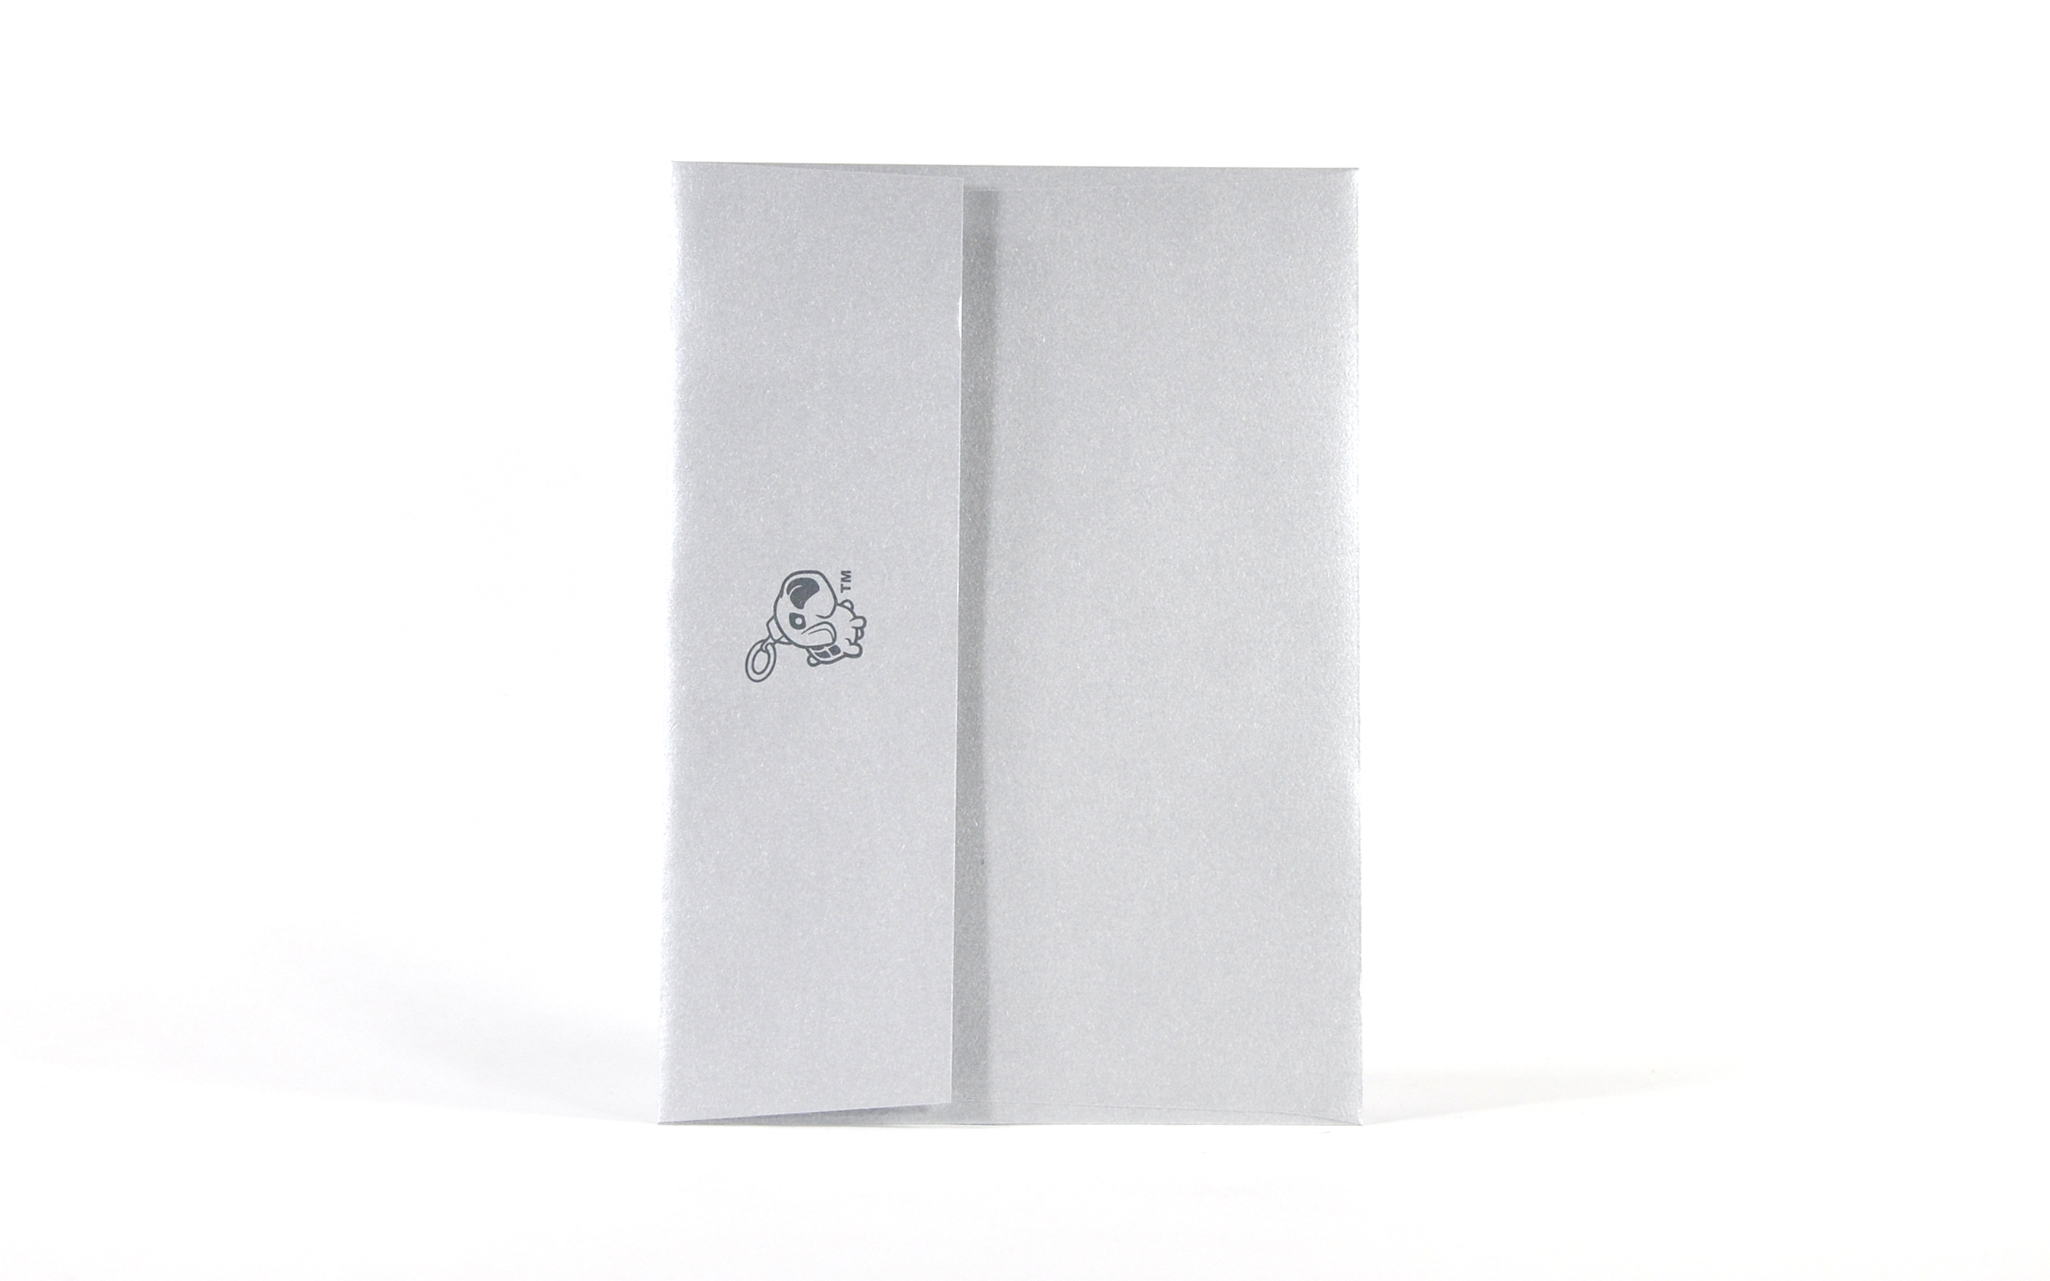 Xmaszilla  By Jacob Elijah (Silver-Matte-Metallic Envelope)